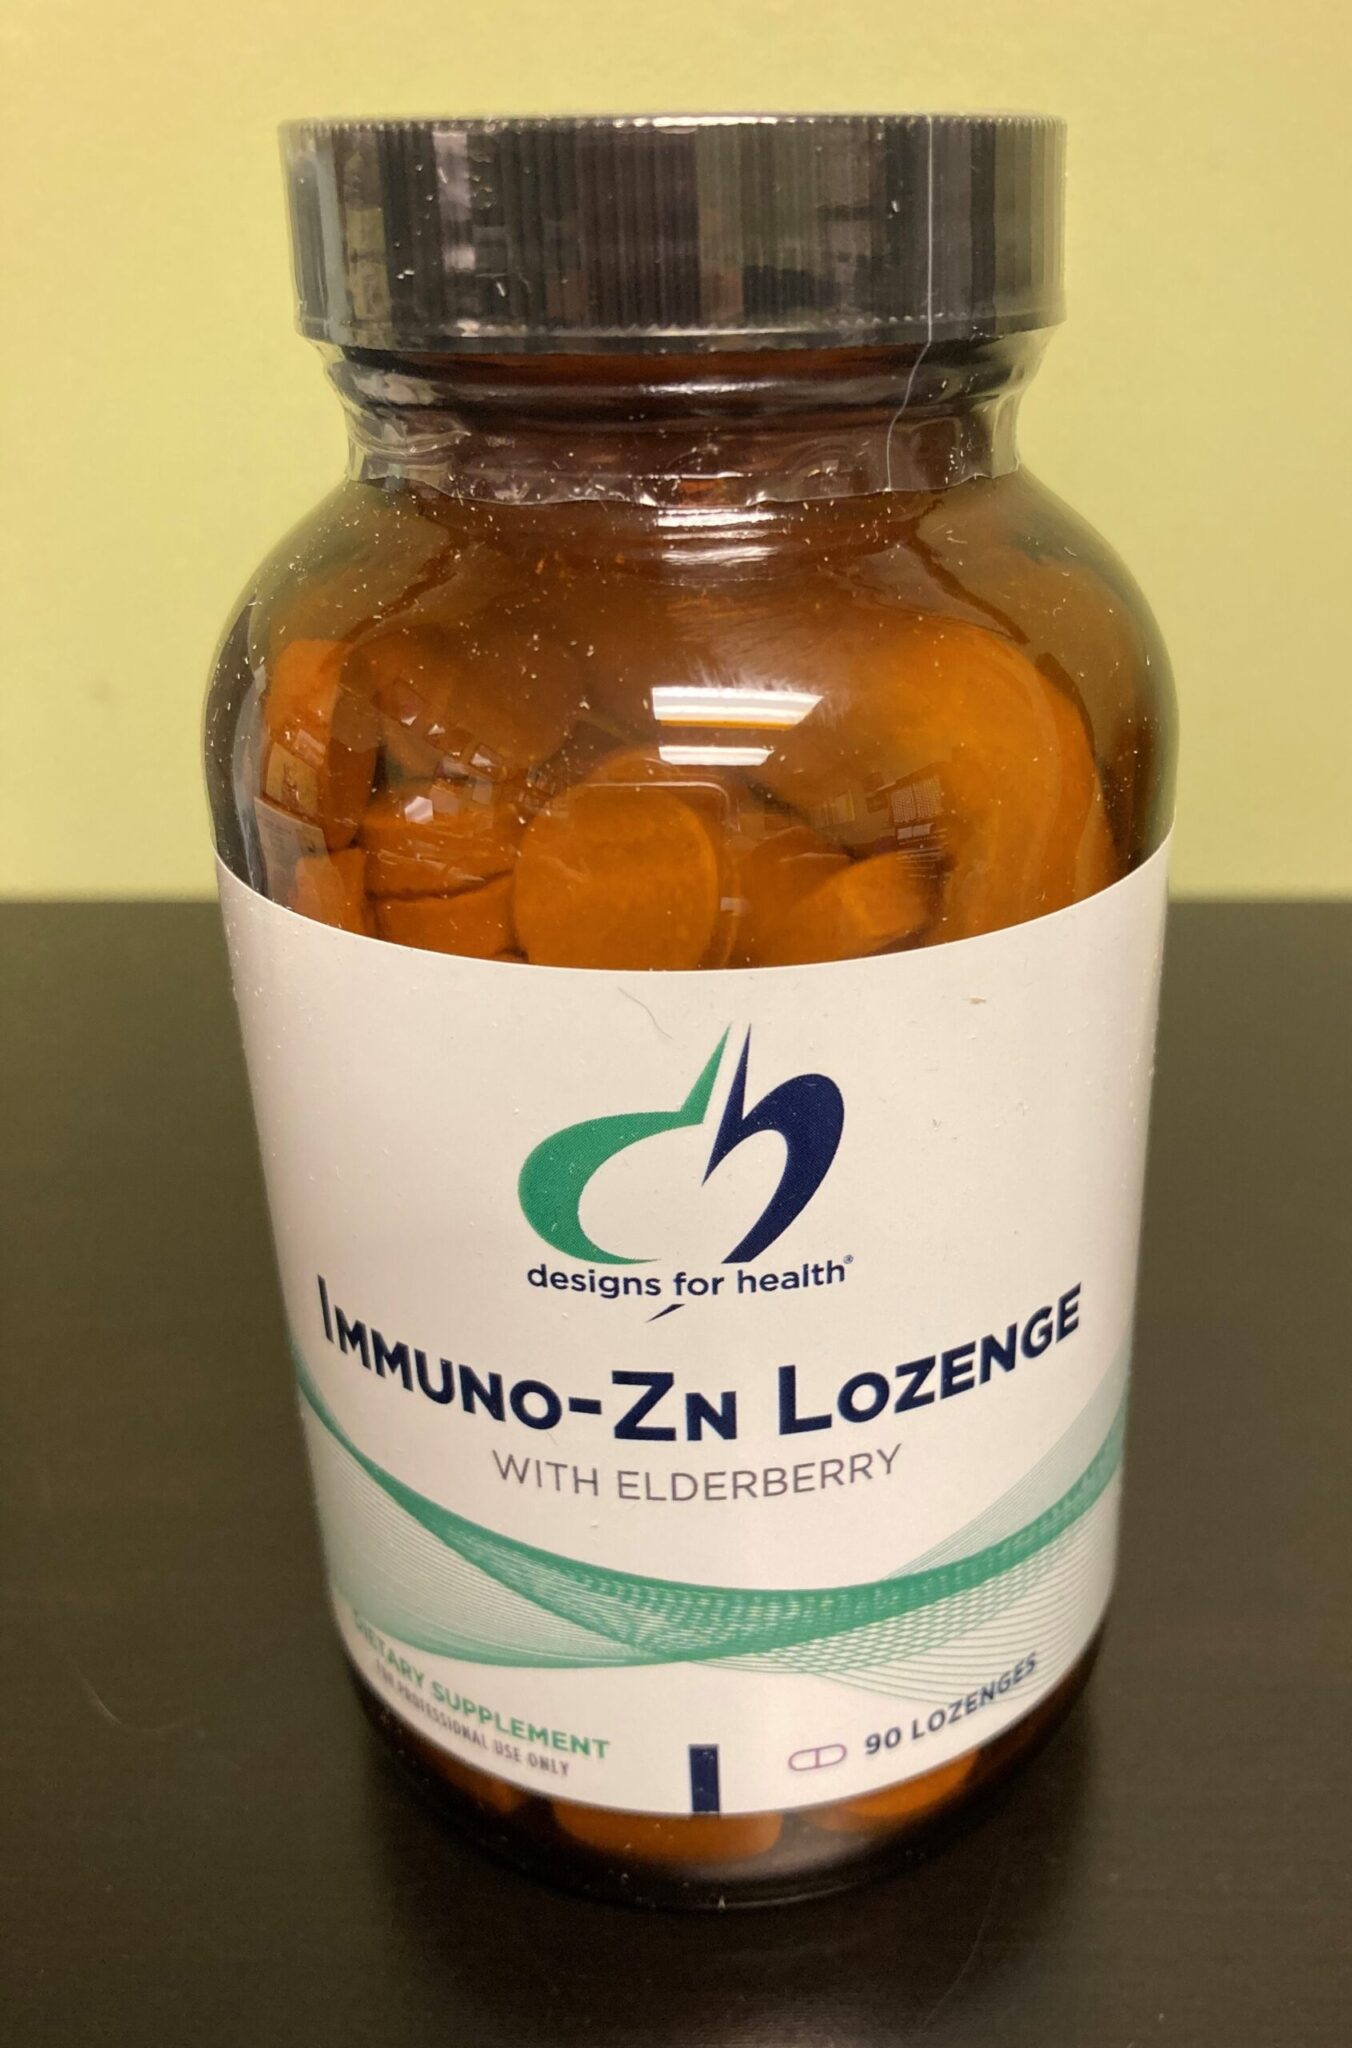 Another Immune System Booster from Designs for Health – Immuno-Zn Lozenges